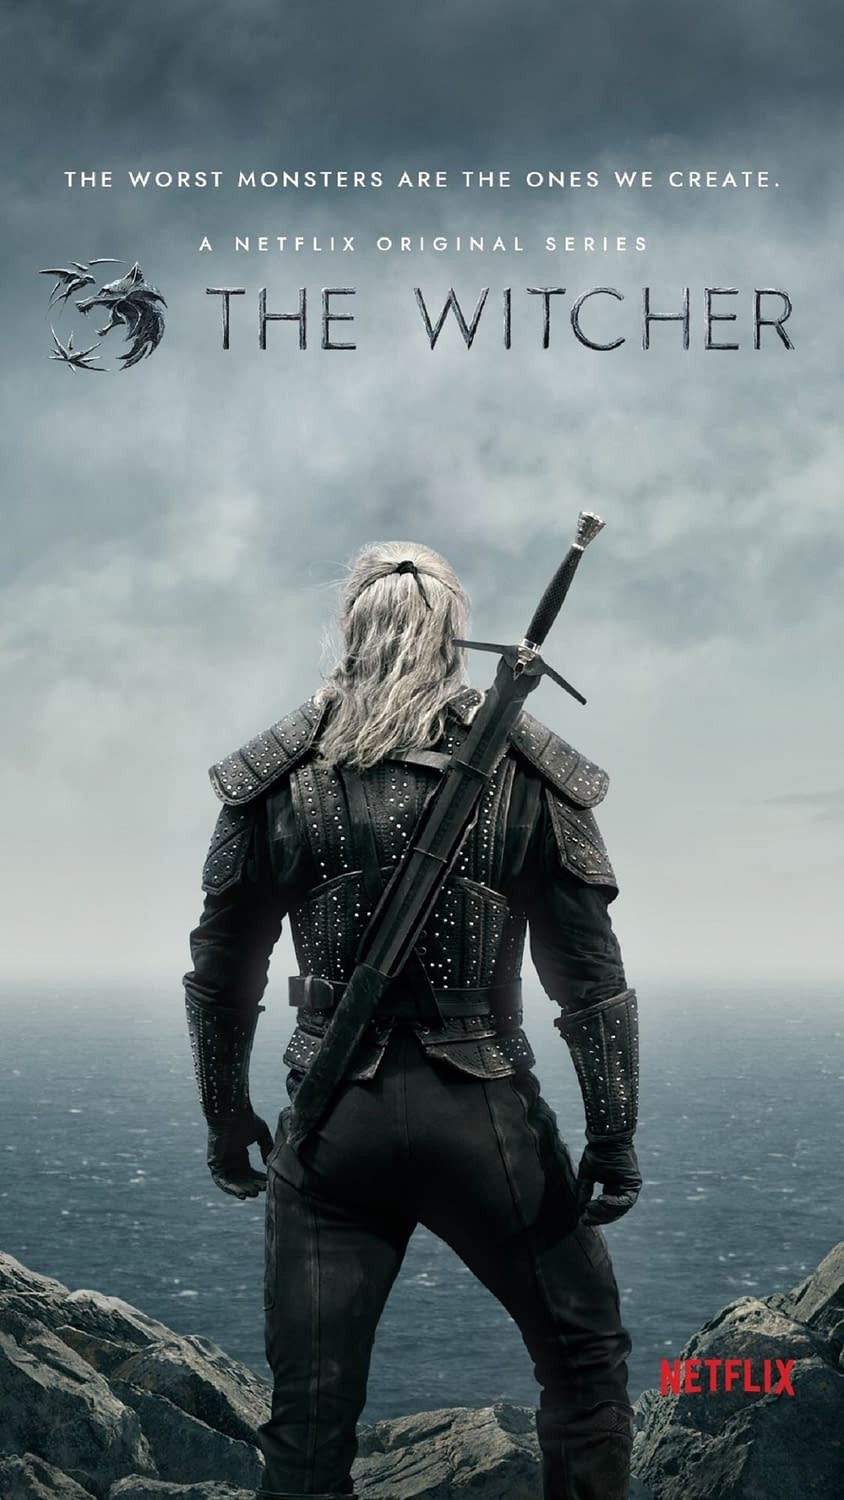 """The Witcher"": Henry Cavill Talks Netflix Series, Previews Scene; Jimmy Kimmel Makes Interesting Observation [VIDEO]"